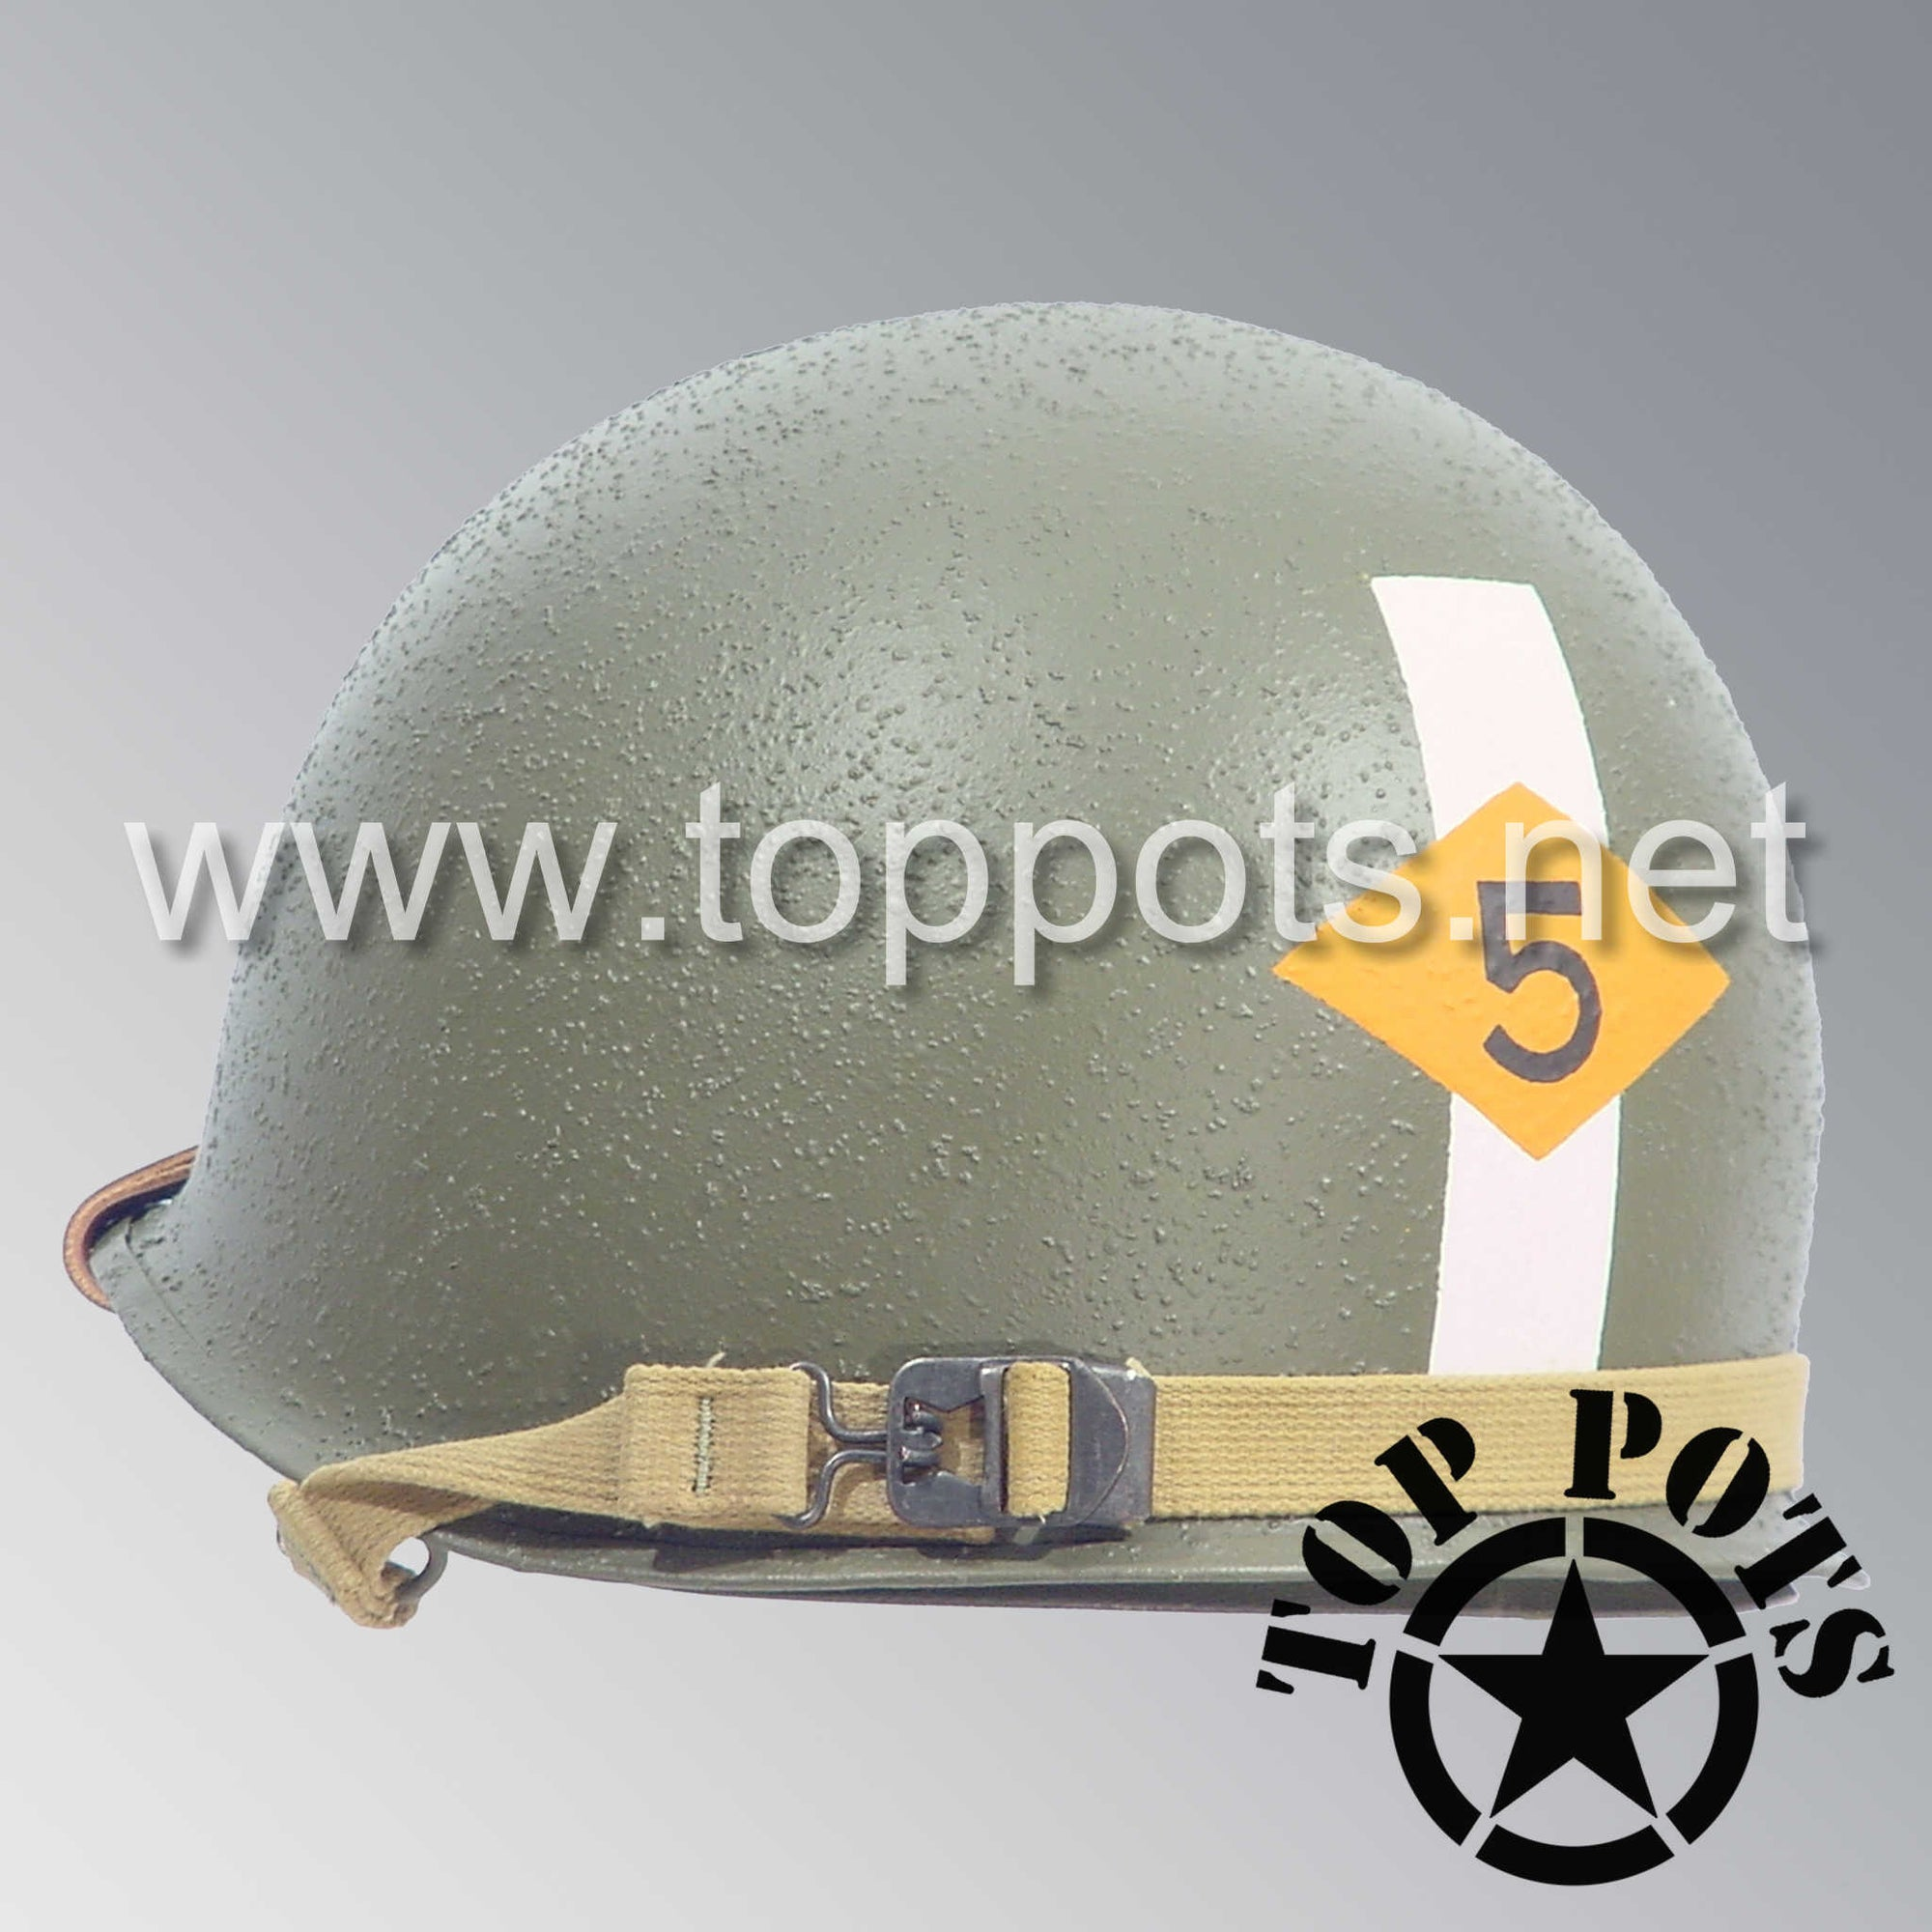 Image 5 of WWII US Army Restored Original M1 Infantry Helmet Swivel Bale Shell and Liner with 5th Ranger Officer Emblem